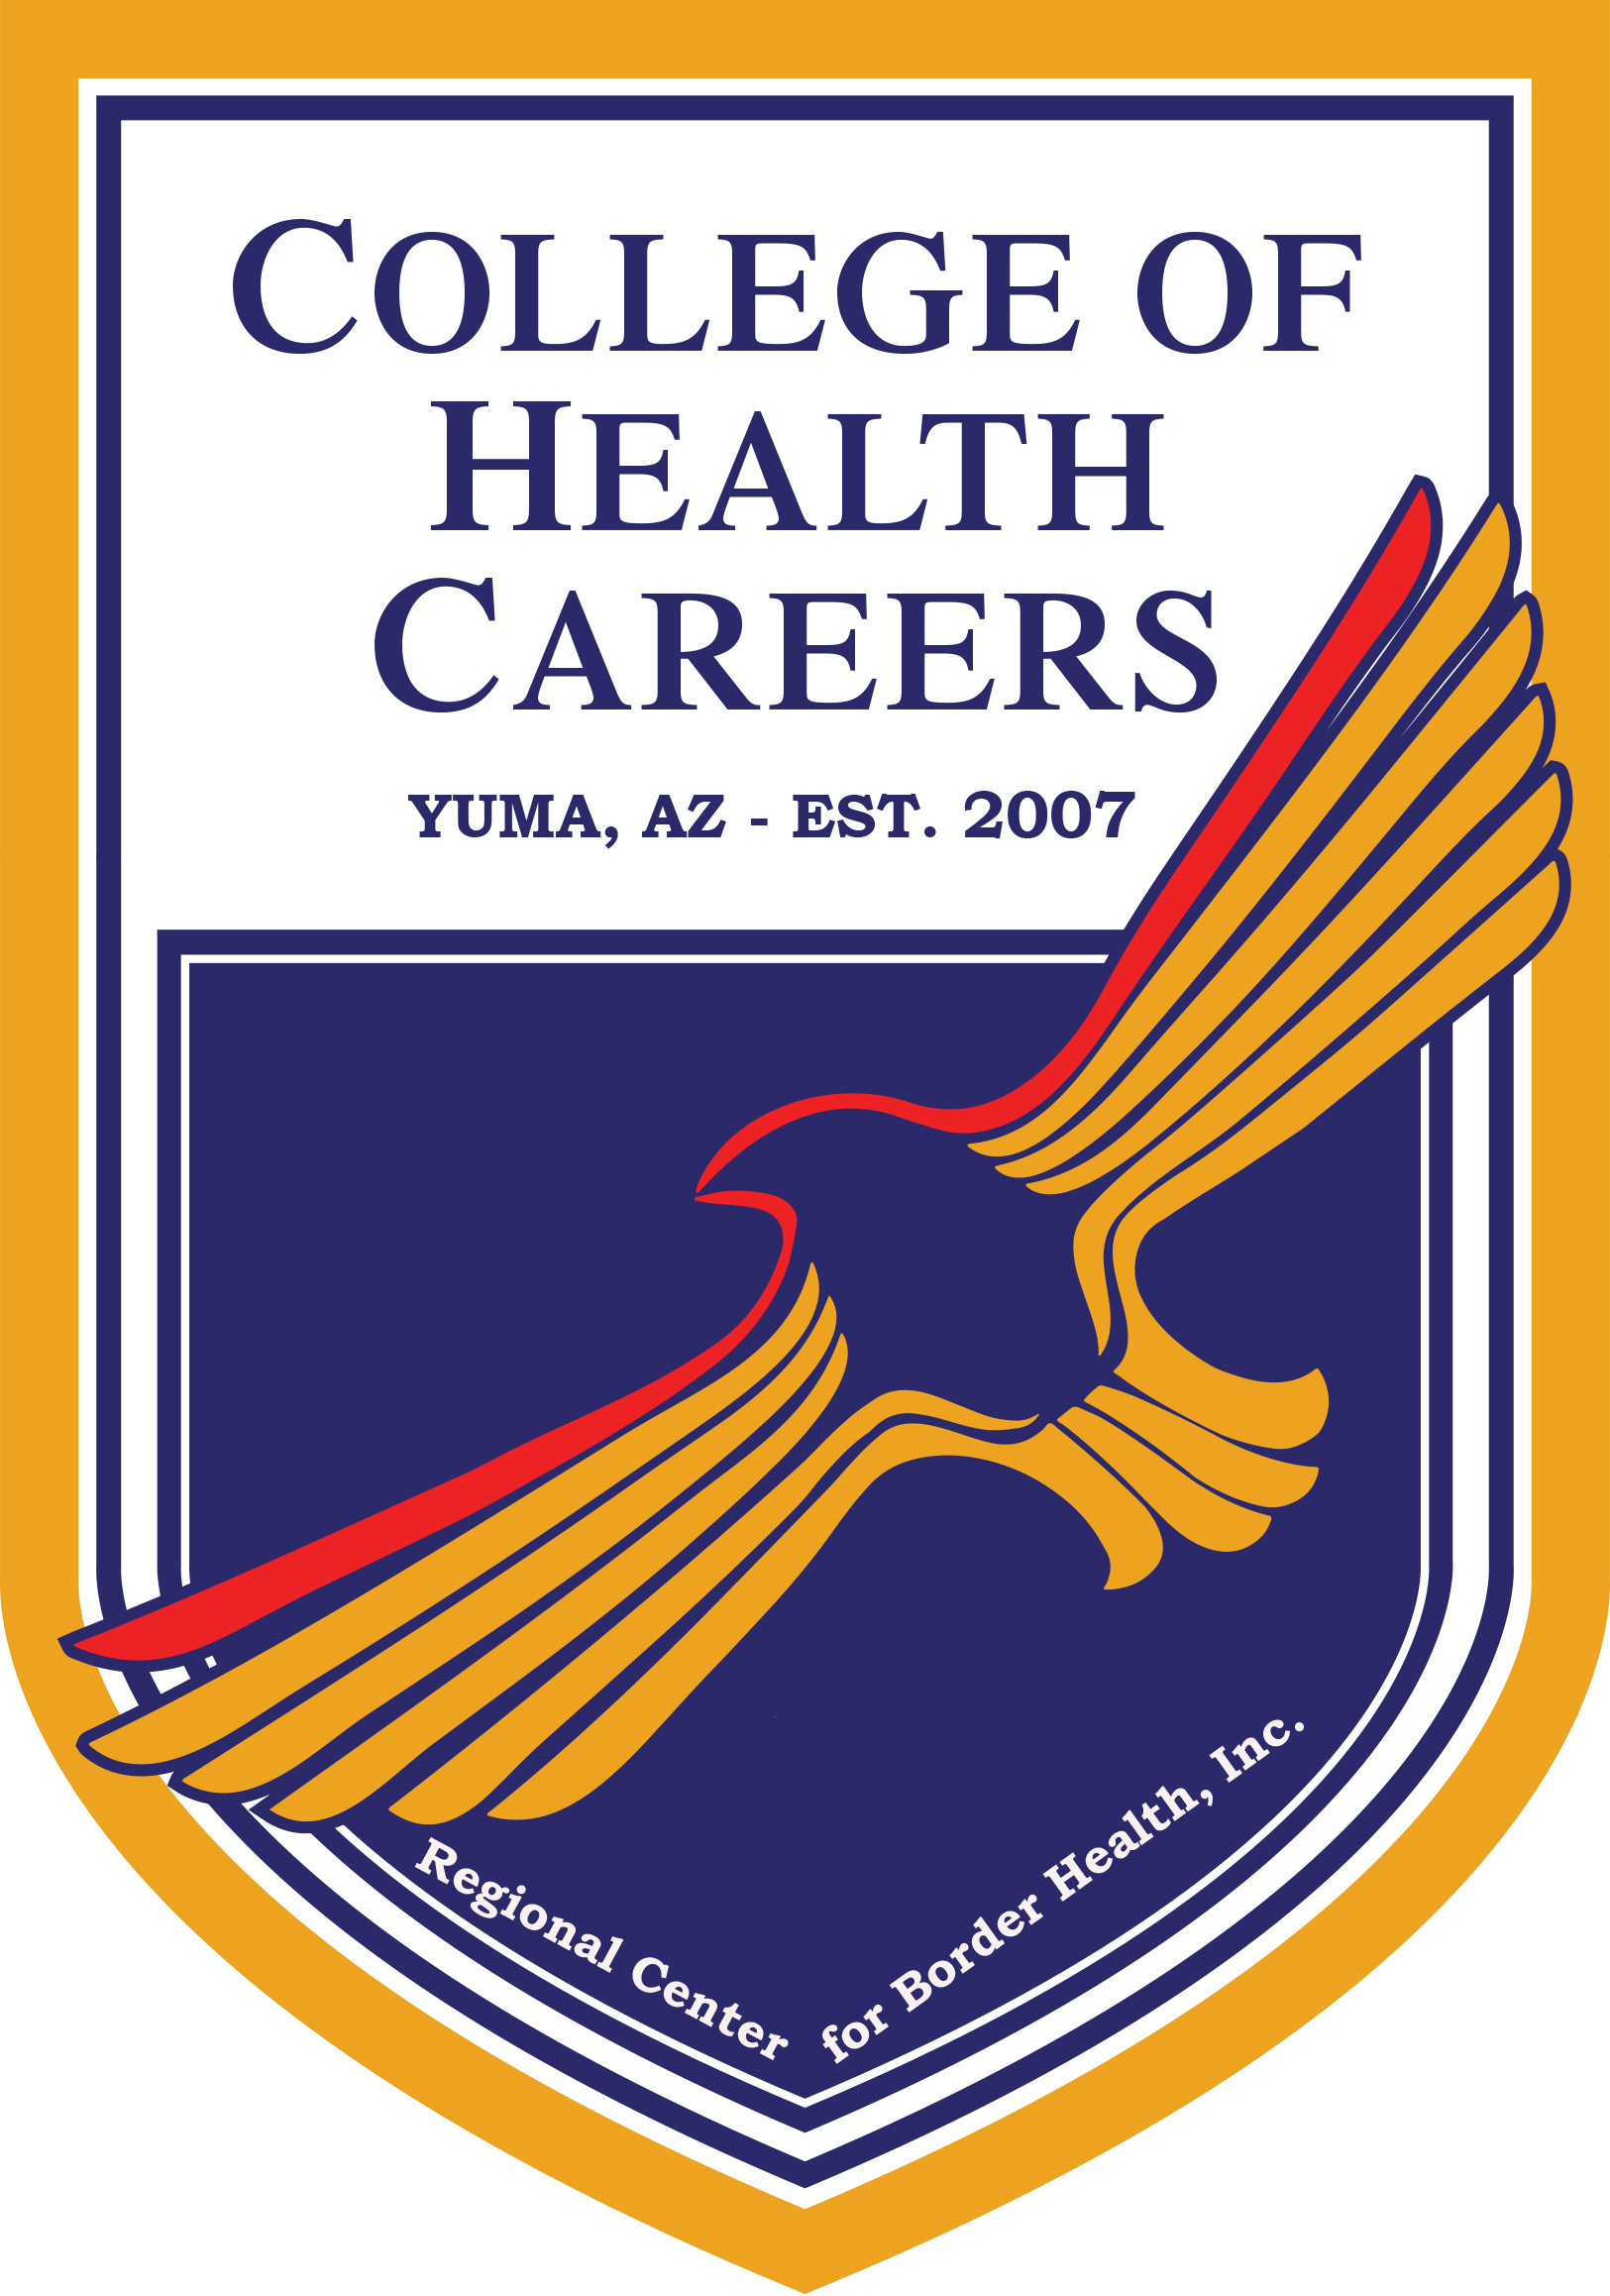 College of Health Careers Logo